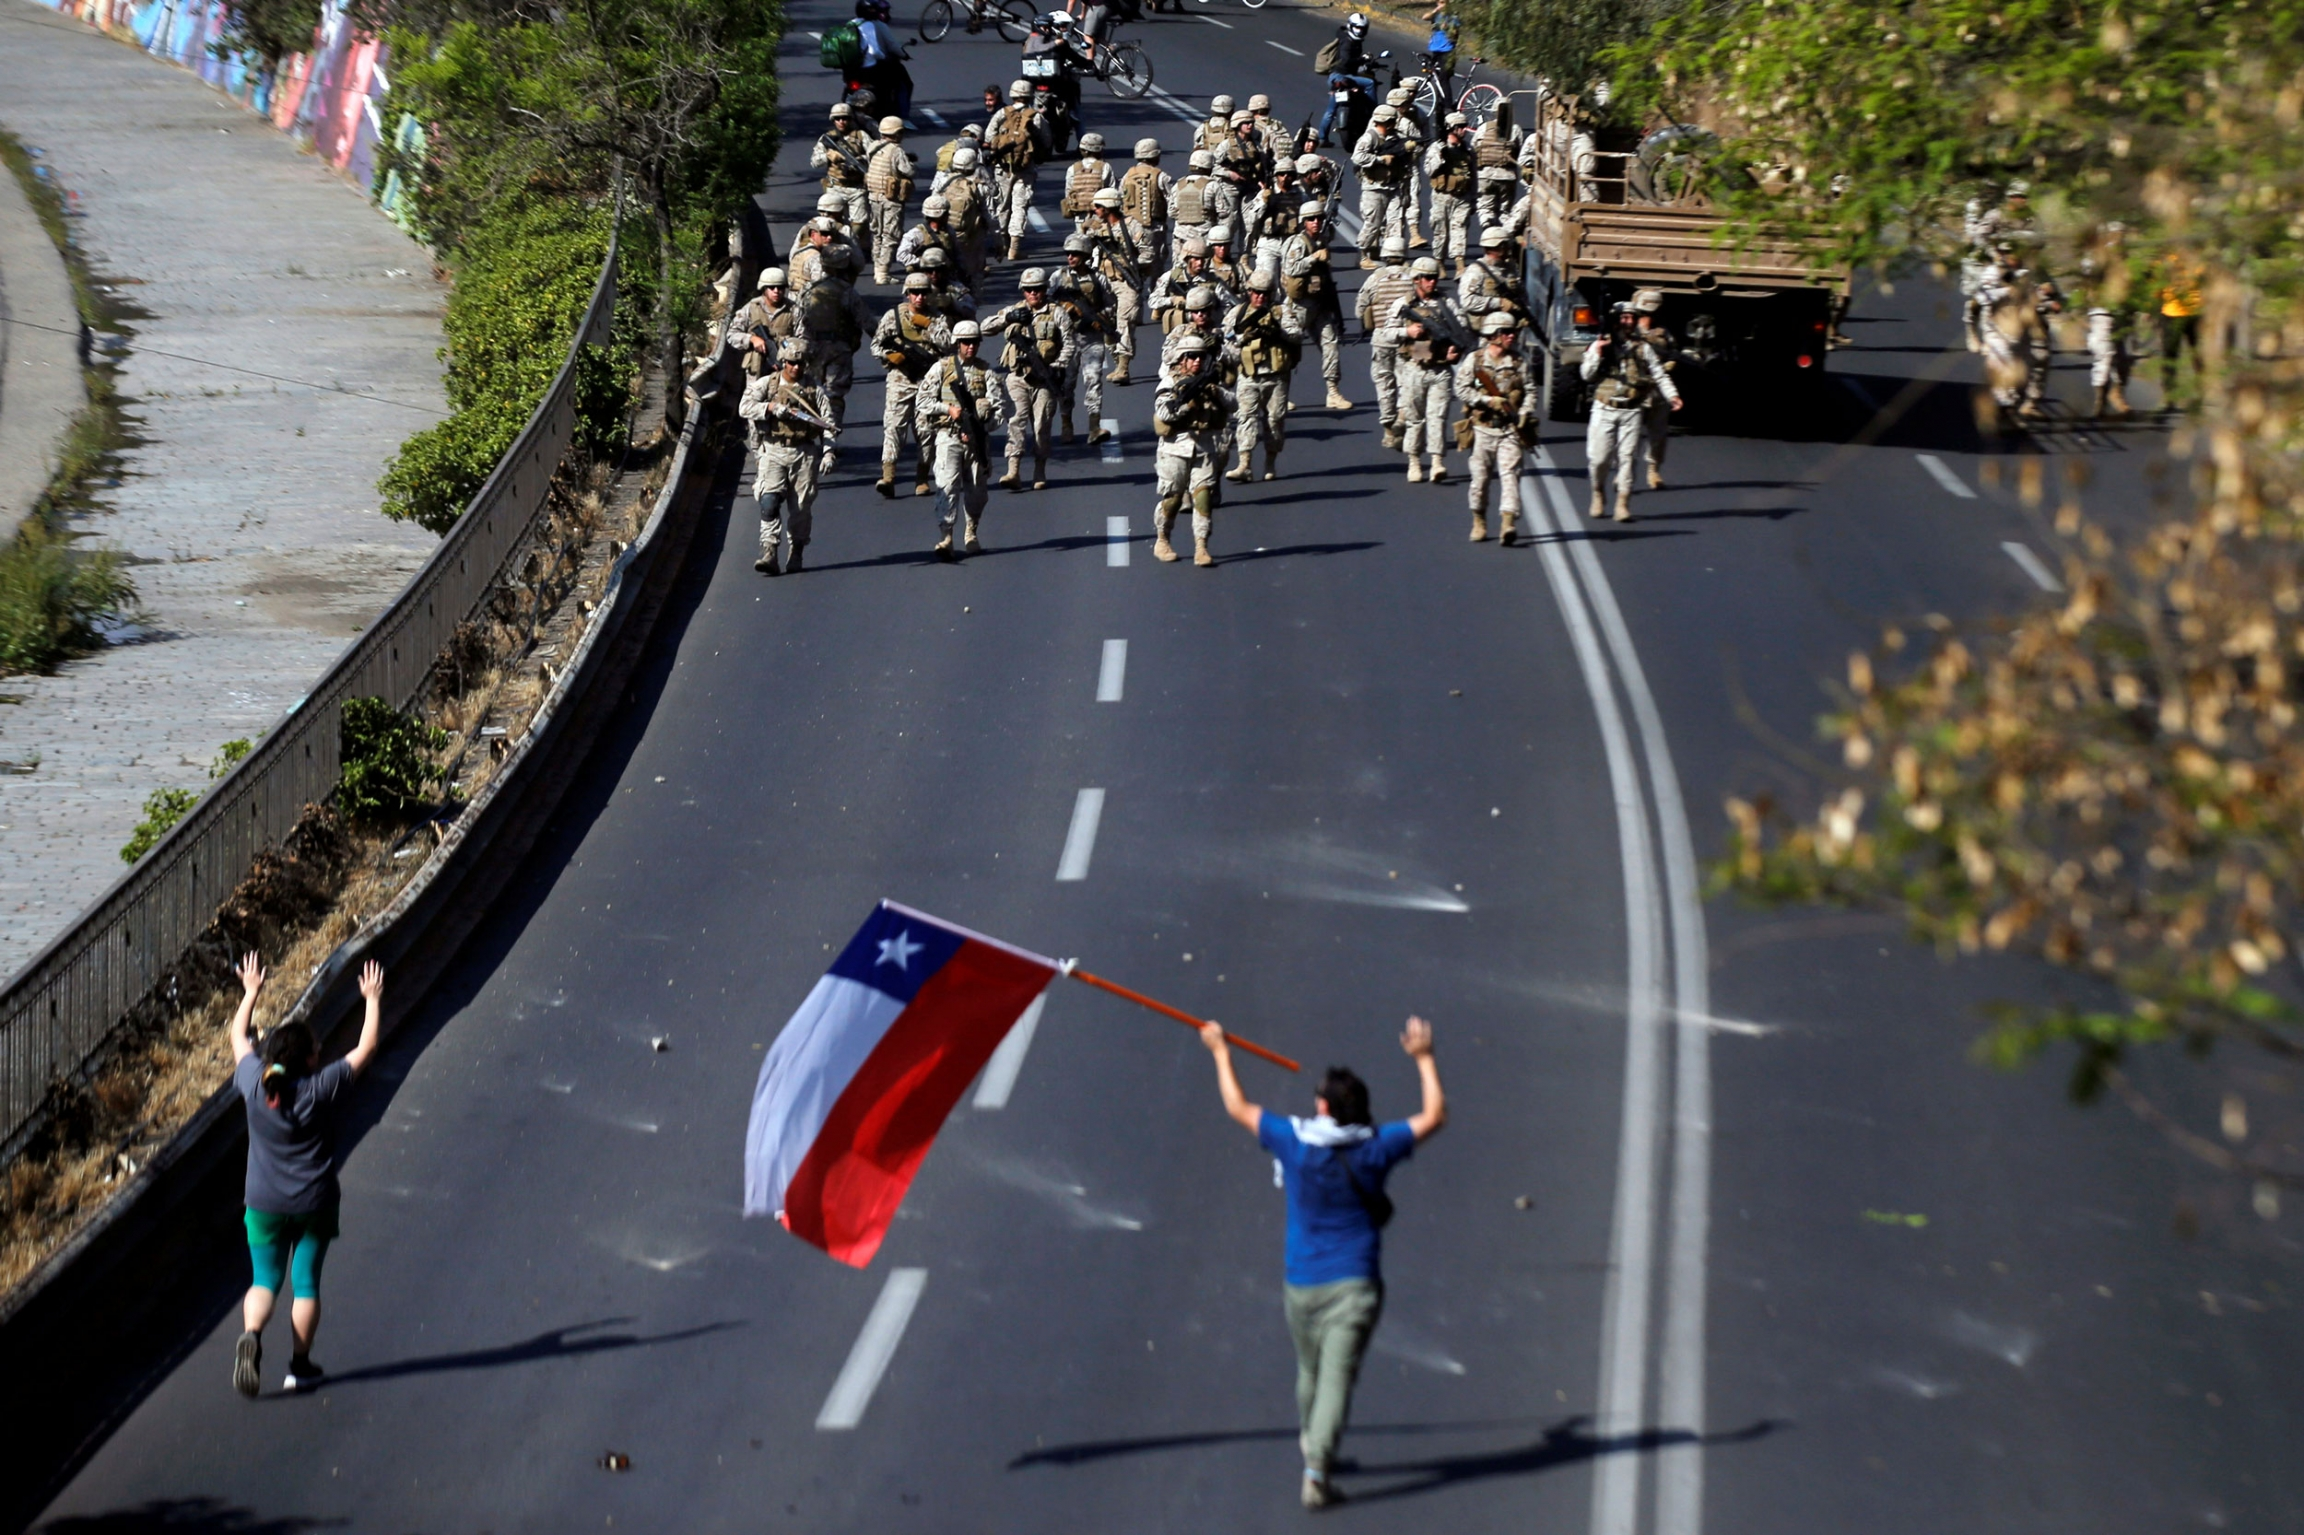 Dozens of Chilean soldiers are shown marching down a road toward two protesters, one carrying a Chilean national flag.